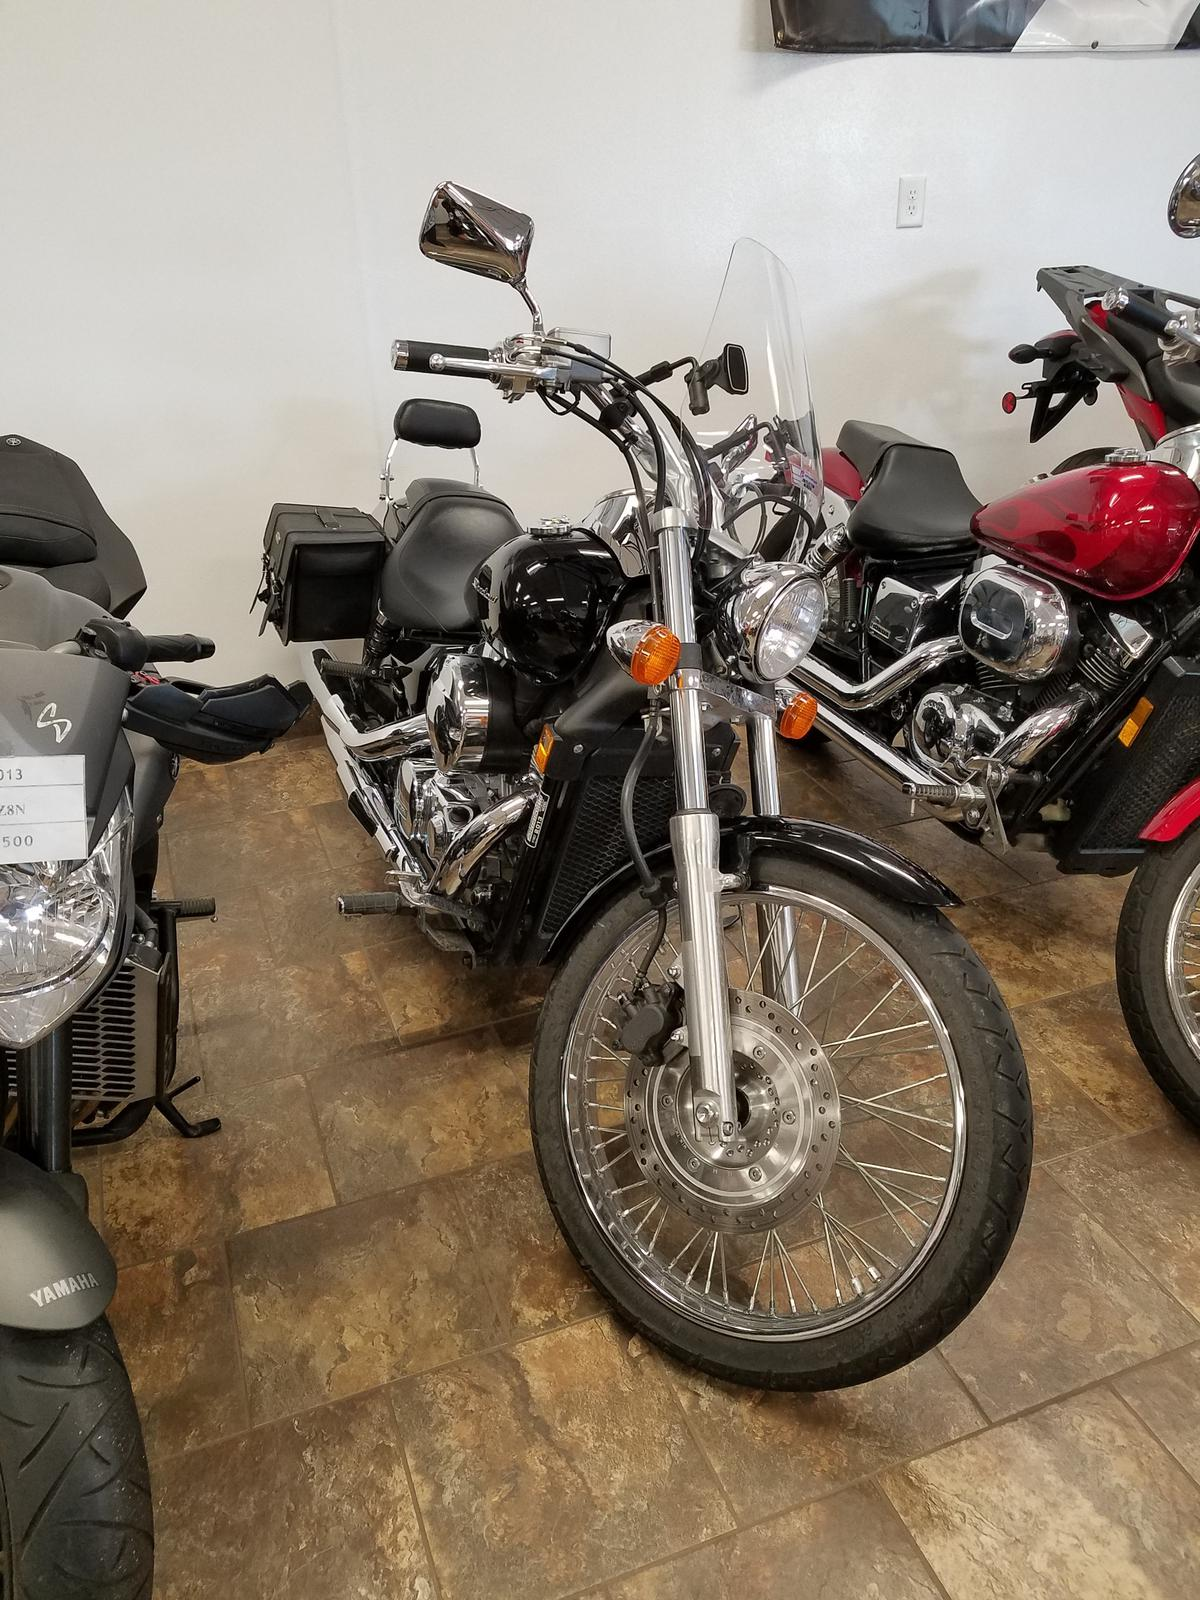 2013 Honda VT750C2 for sale in SIOUX CITY IA